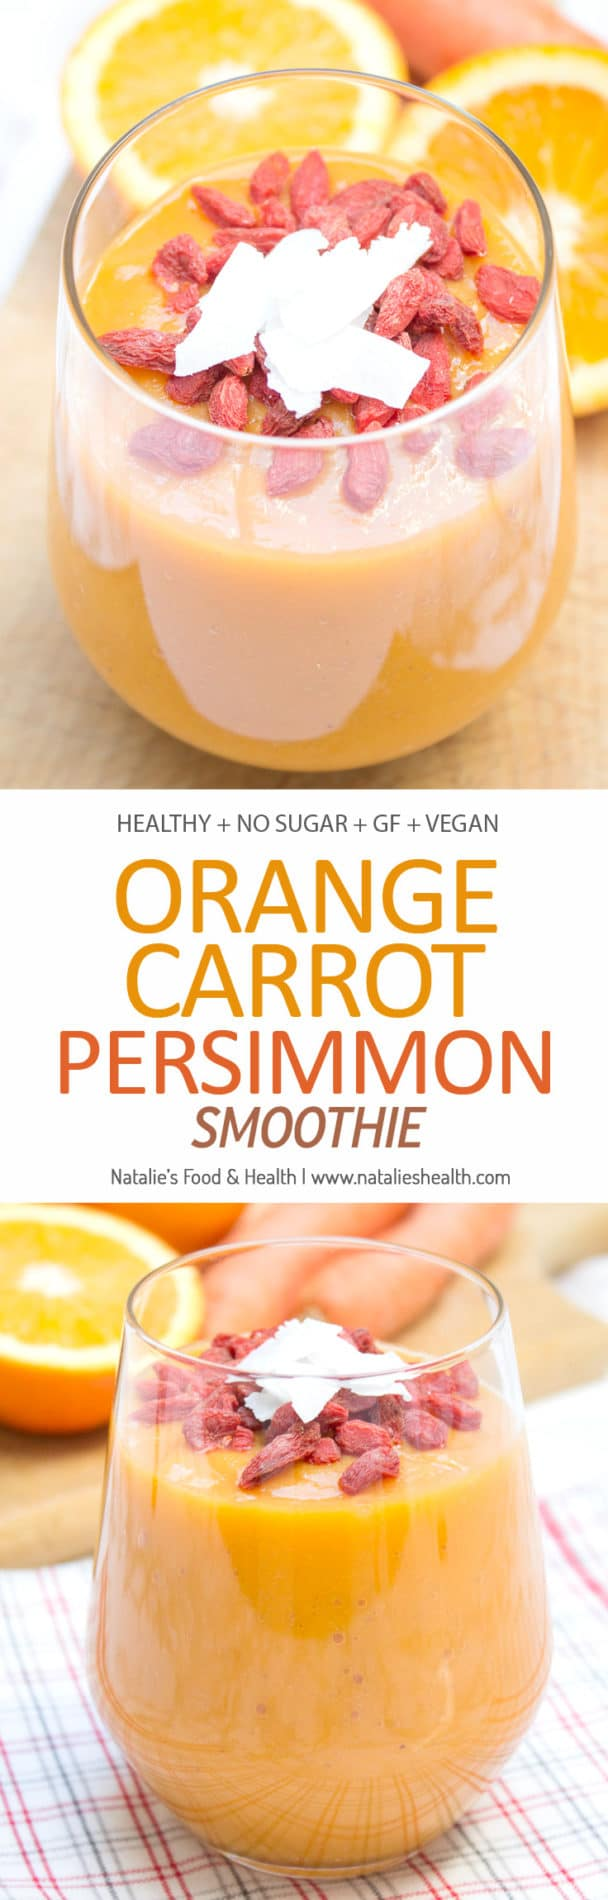 Naturally sweet and just delightful, Orange Carrot Persimmon Smoothie enriched with super spice - TURMERIC is the perfect healthy and nutritious meal for the whole family. This immune boosting smoothie is packed with vitamins, antioxidants, and high-quality dietary fibers. It's also vegan, gluten-free and sugar-free. CLICK to read the recipe or PIN for later!